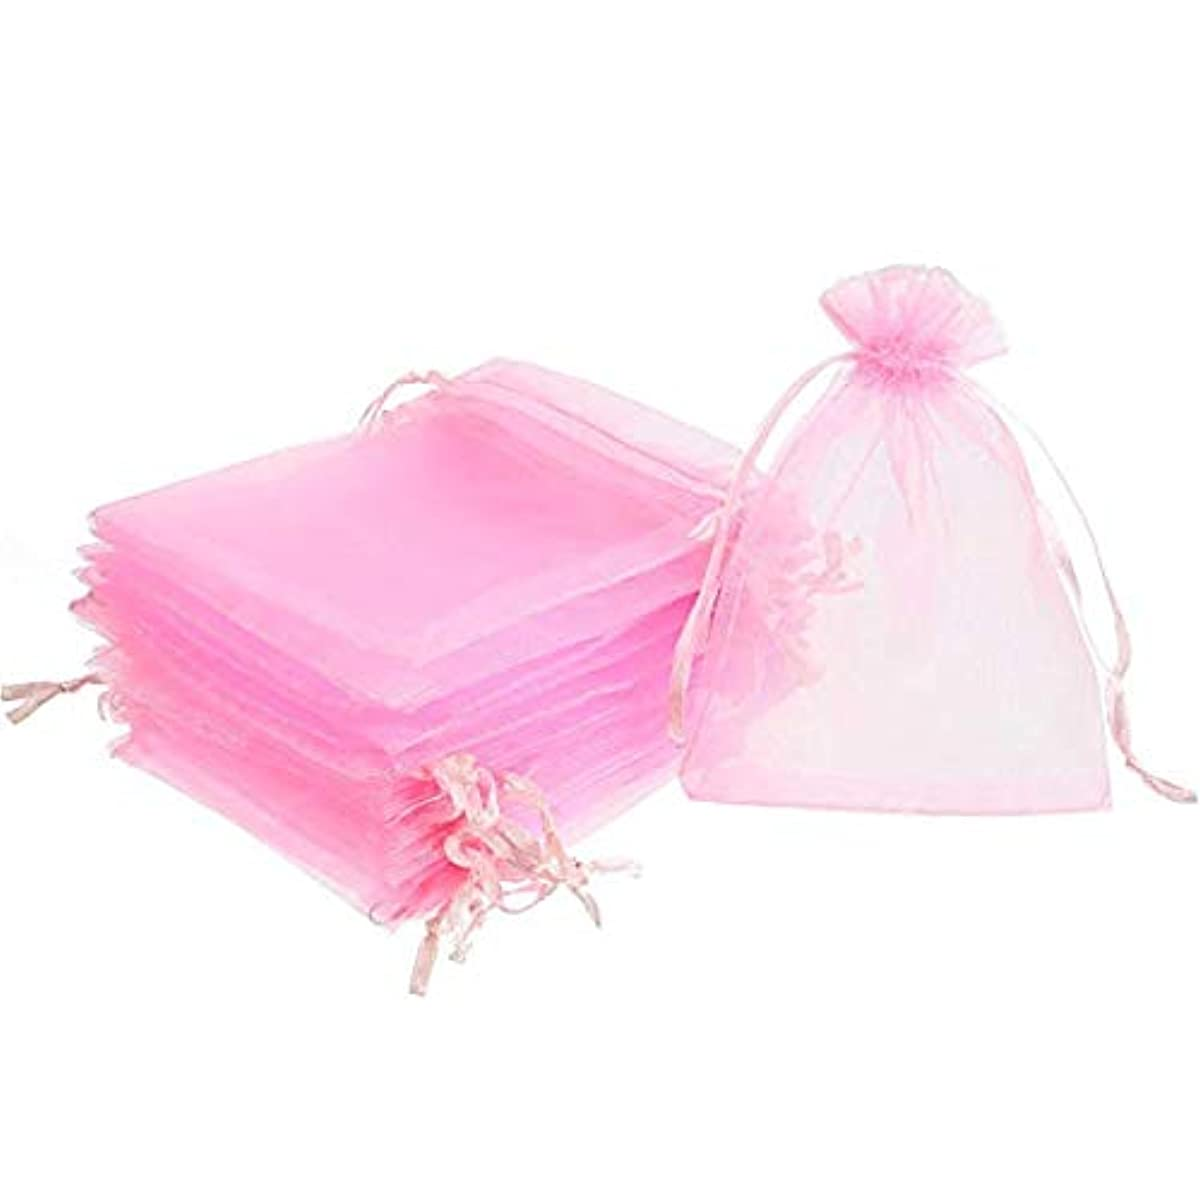 100Pcs Sheer Organza Bags Jewelry Candy Drawstring Pouches for Wedding Party Christmas Favor Gift Bags (Pink, 5x7